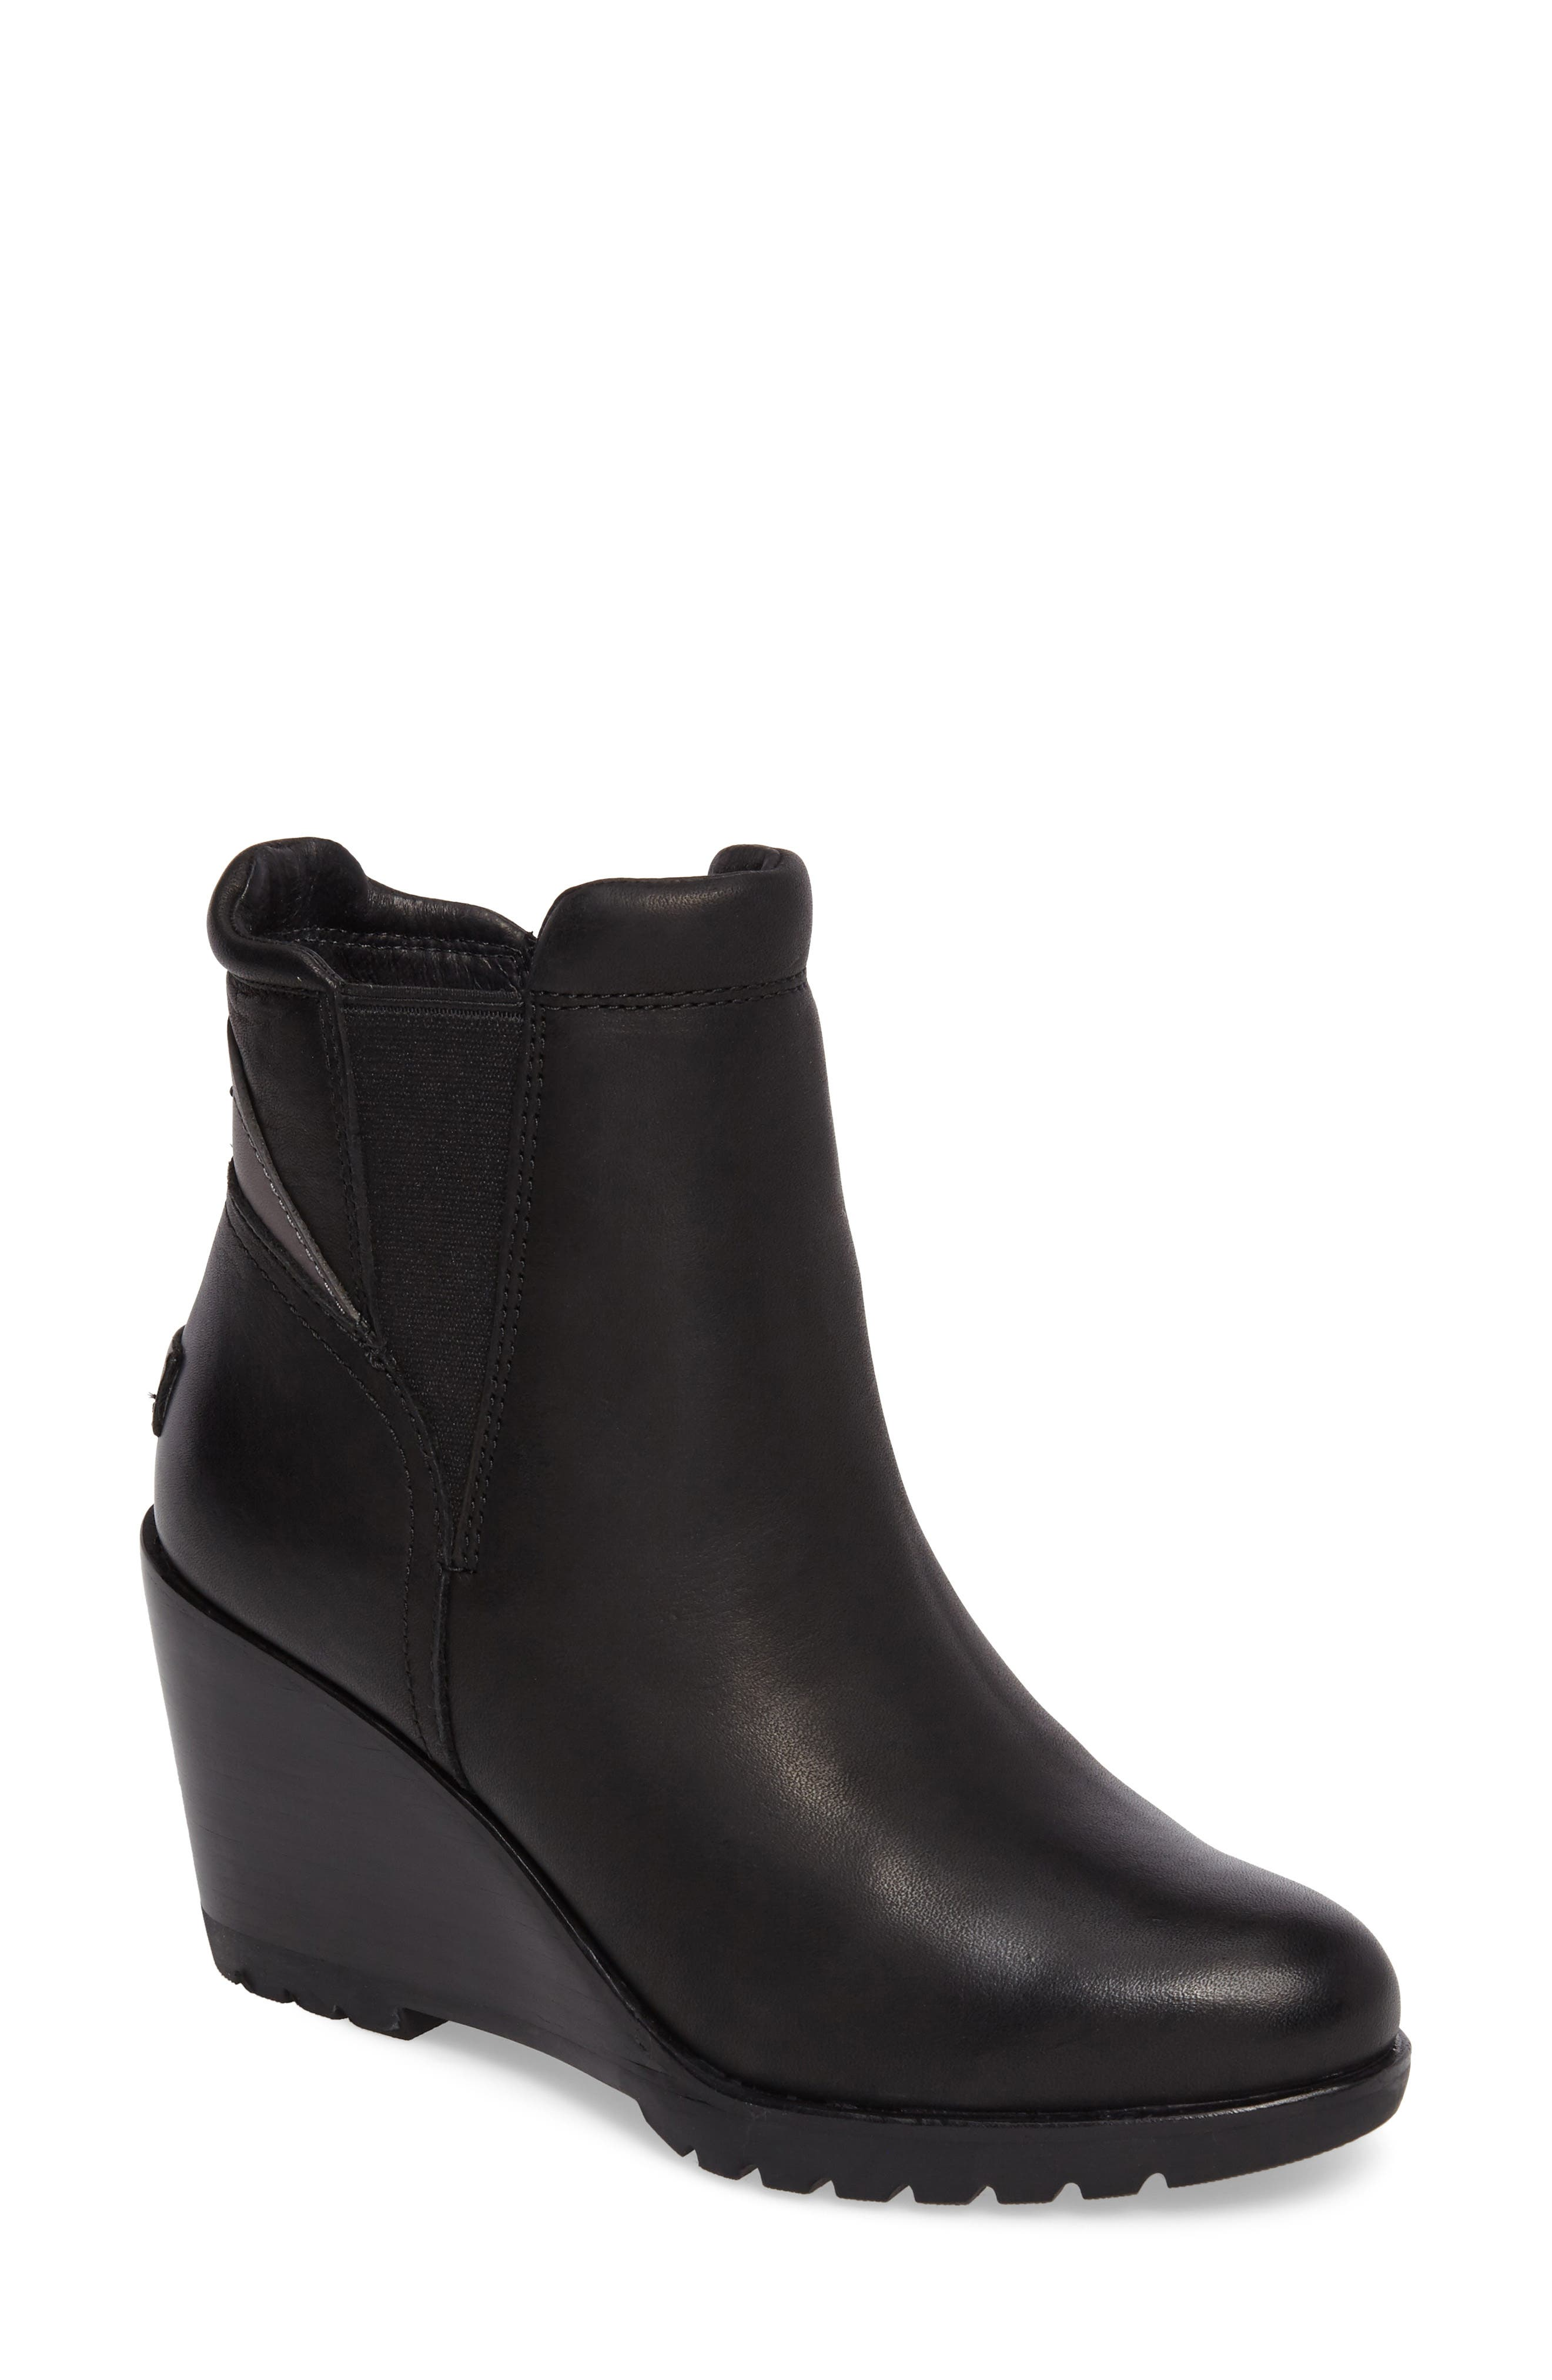 After Hours Chelsea Boot,                         Main,                         color, Black